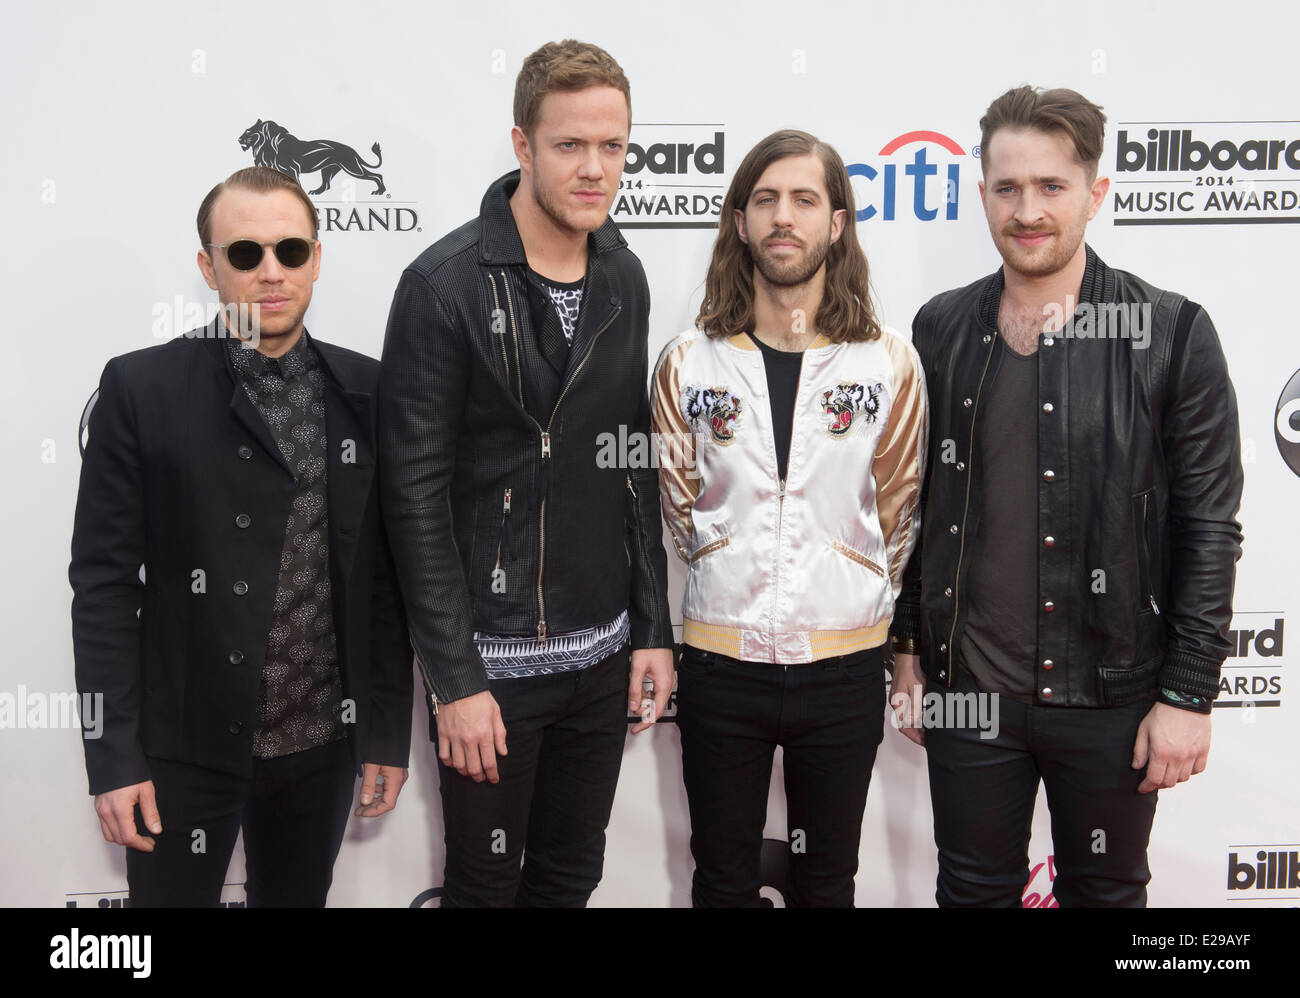 Rock band Imagine Dragons attend the 2014 Billboard Music Awards in Las Vegas - Stock Image